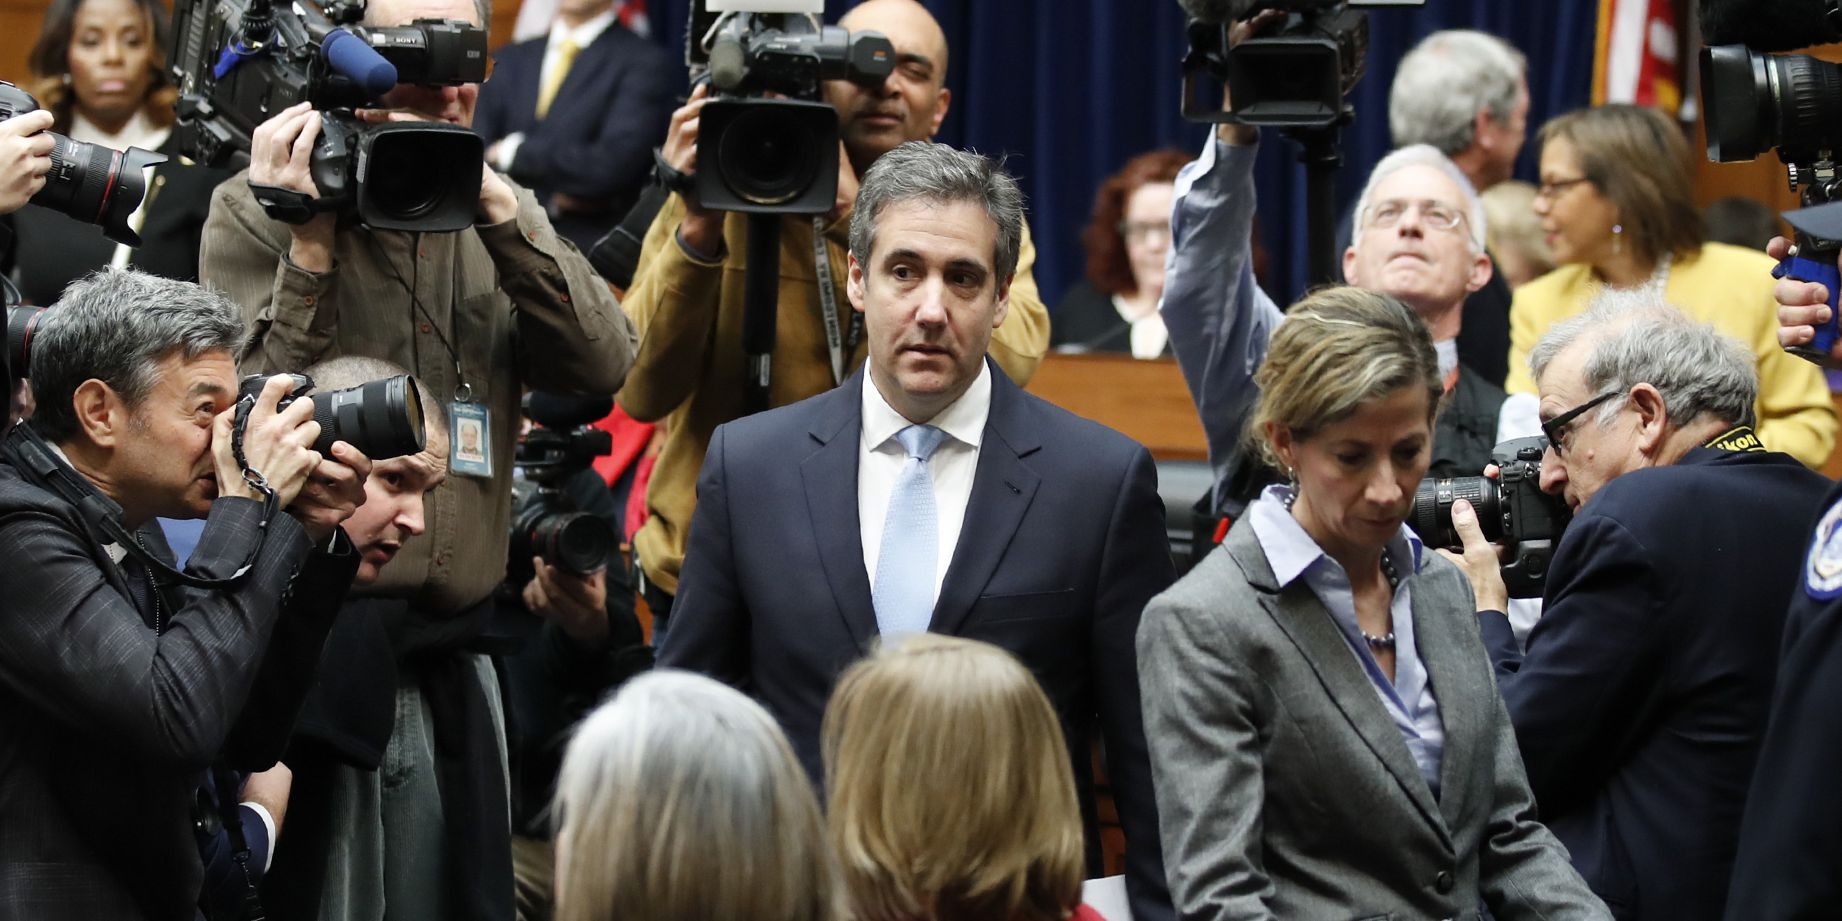 Michael Cohen casts Trump as a 'conman' who directed lies and cover-ups